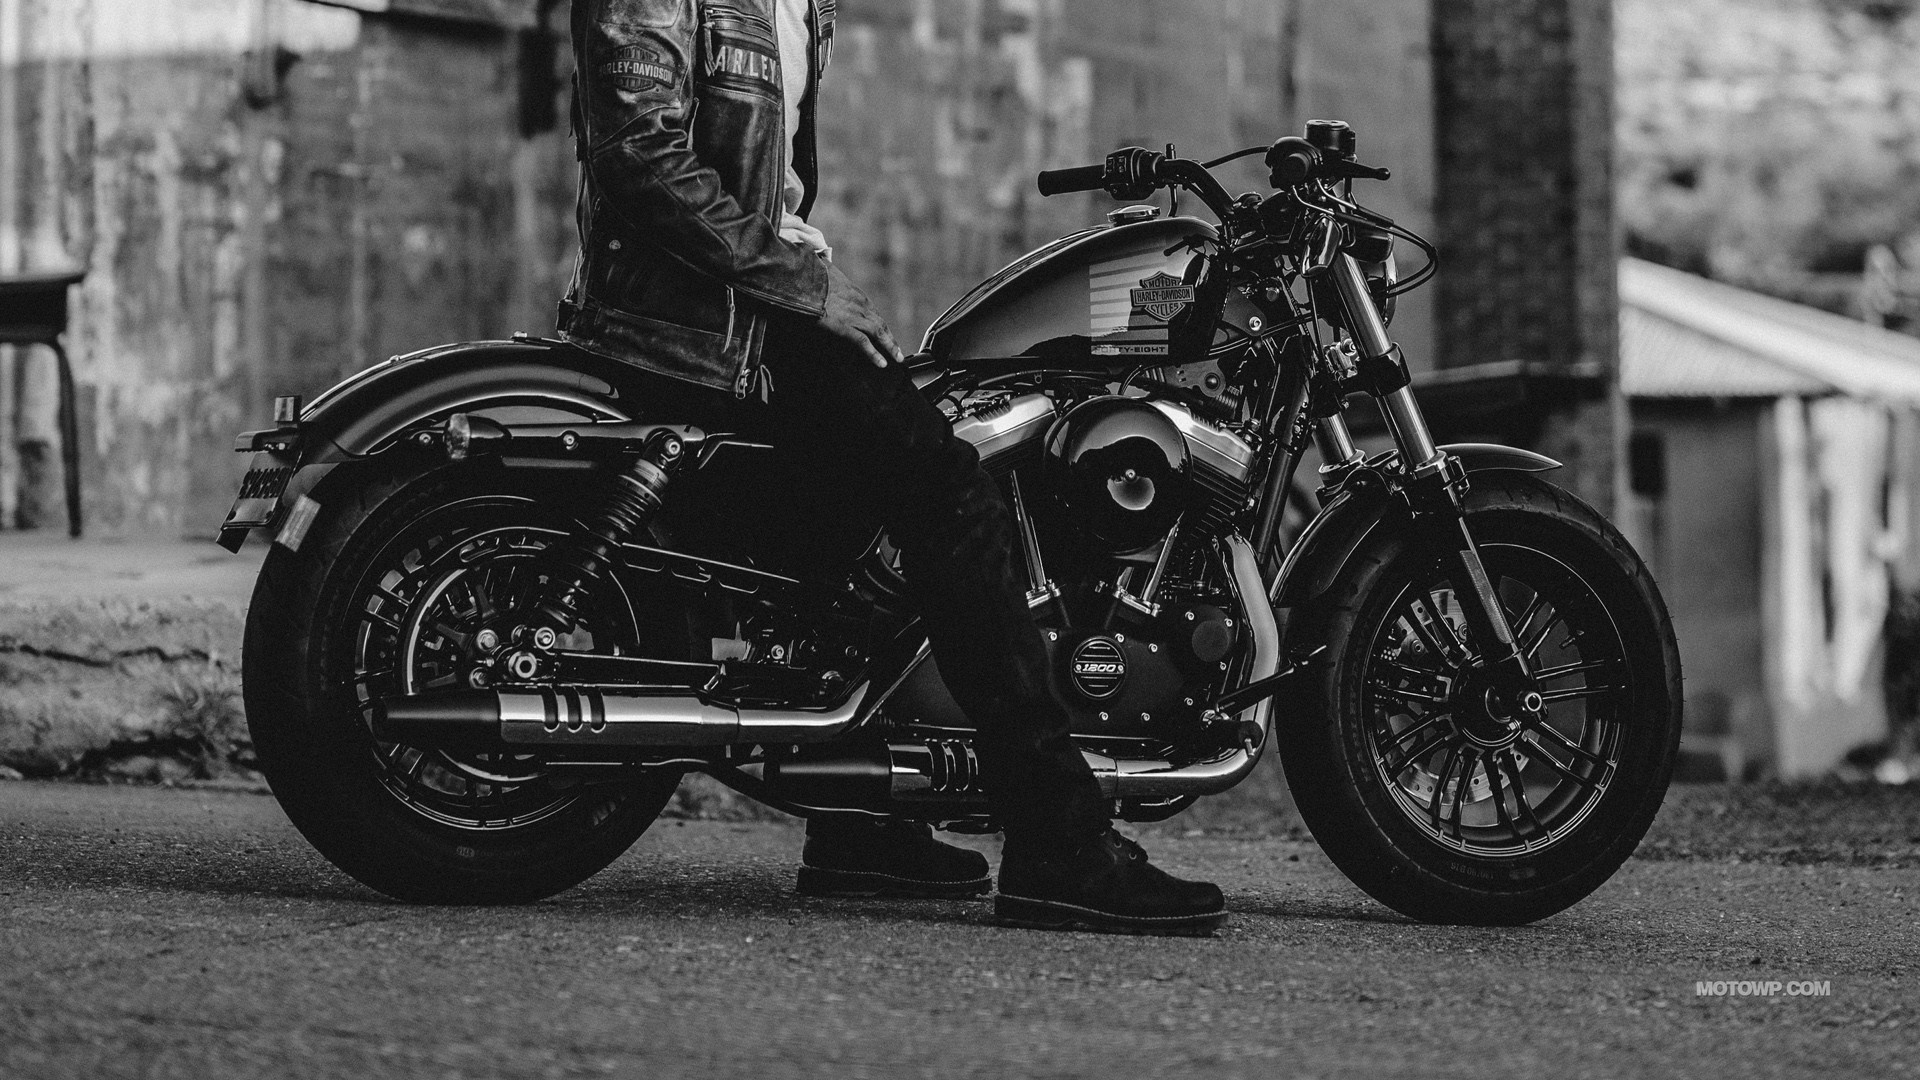 2014 Harley Davidson Sportster Forty Eight 1 2 Source Wallpapers 79 Images